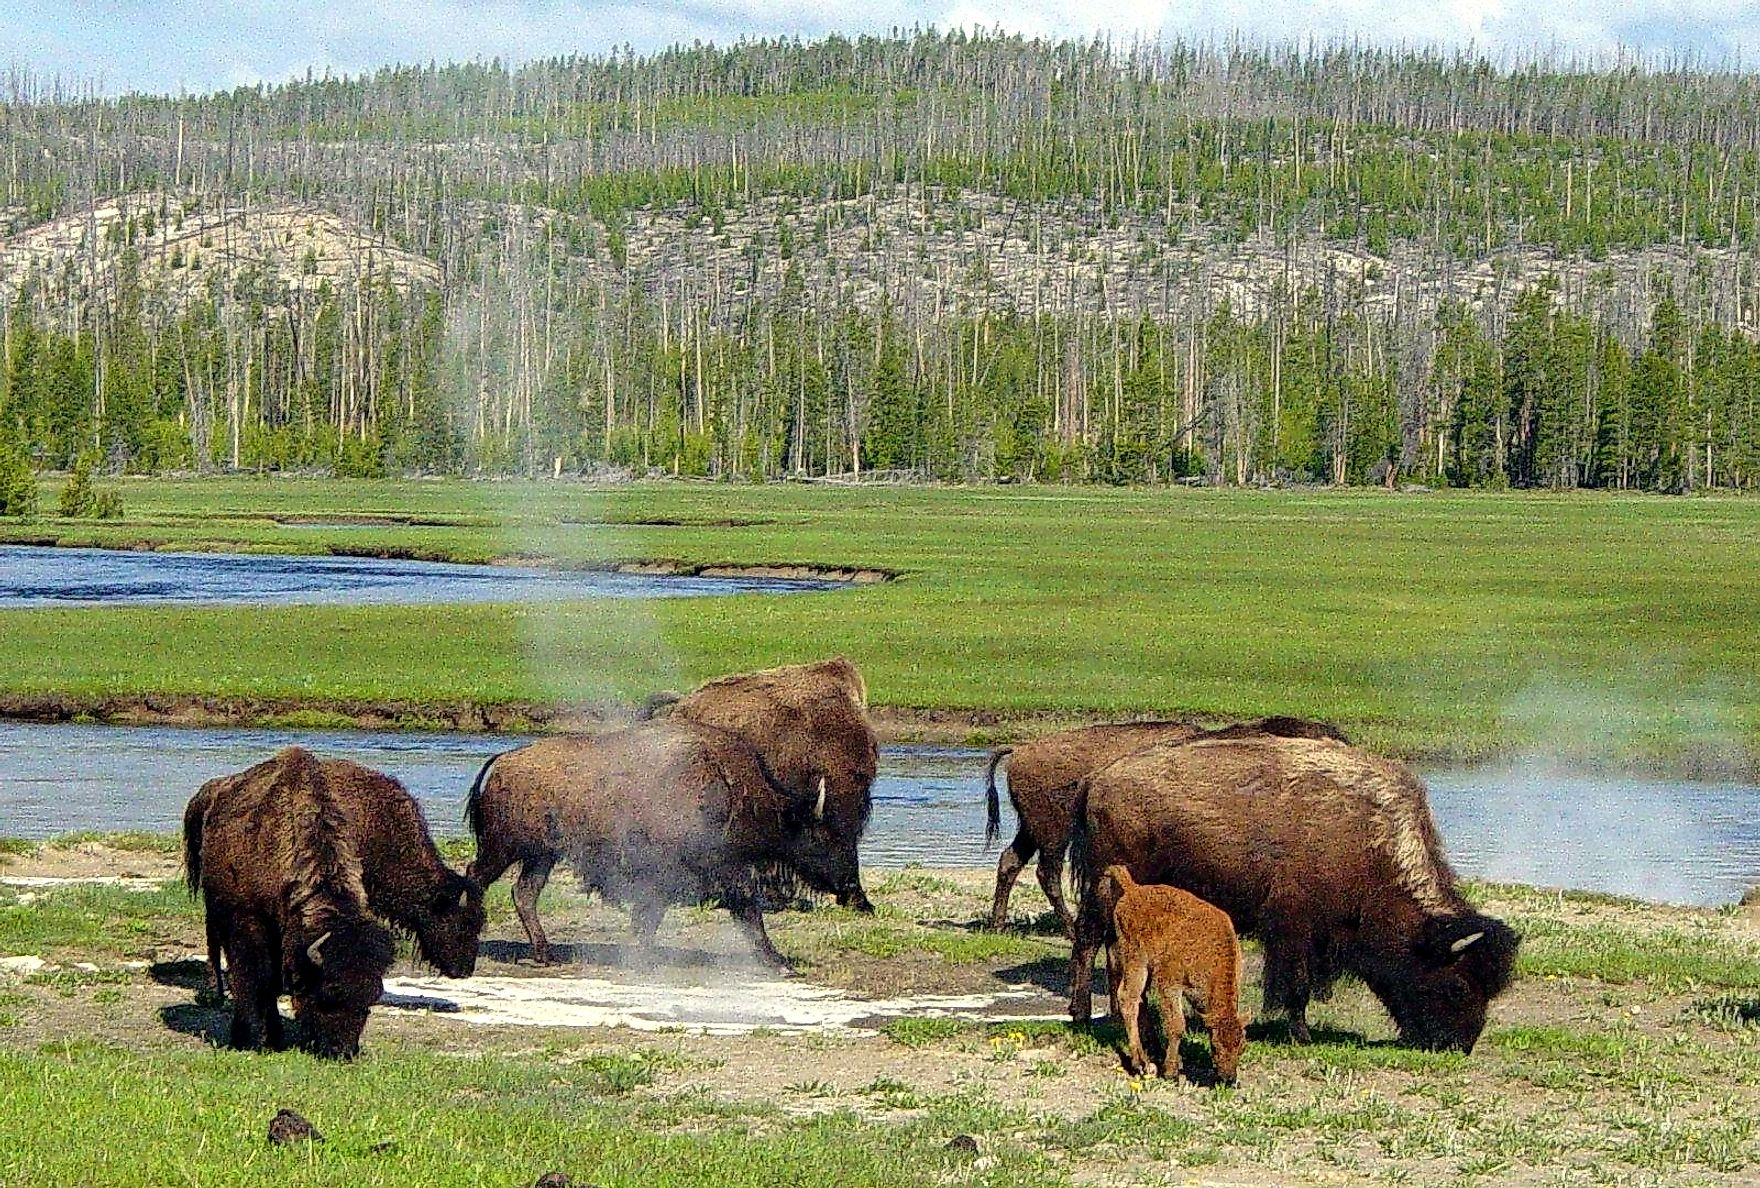 Bison Grazing Near a Hot Spring in the Yellowstone National Park